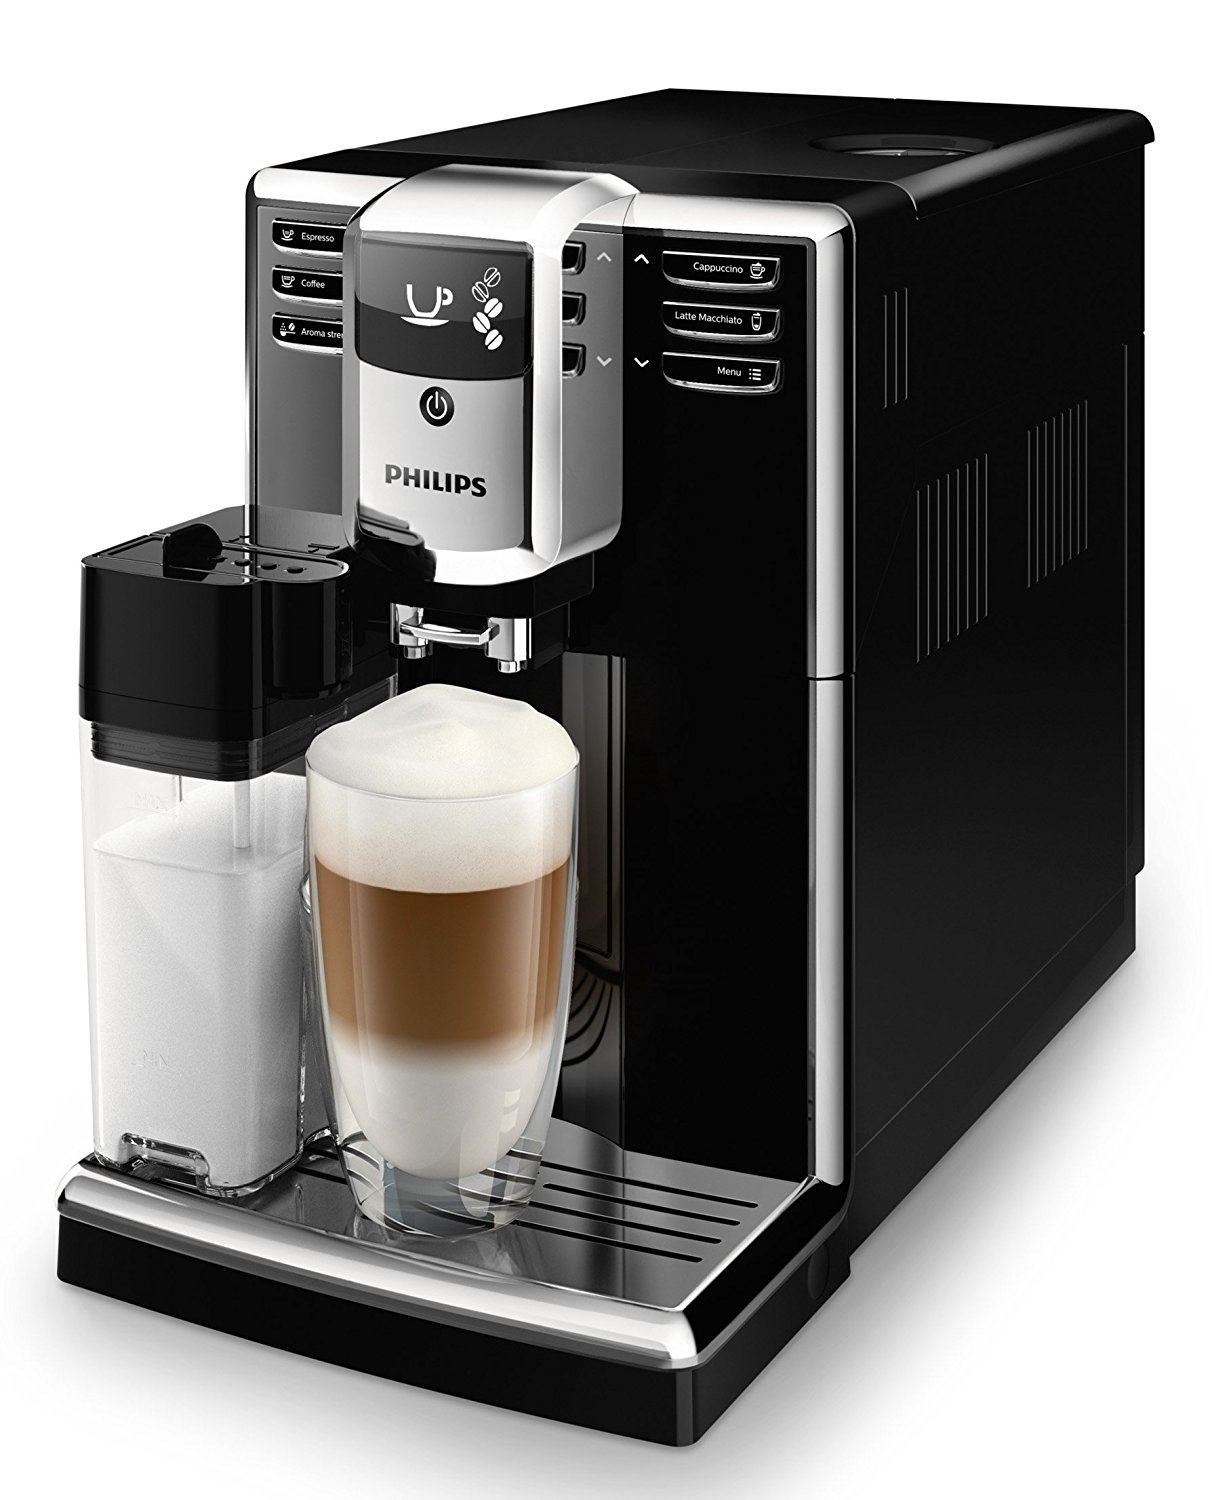 Philips Kaffeevollautomat amazon